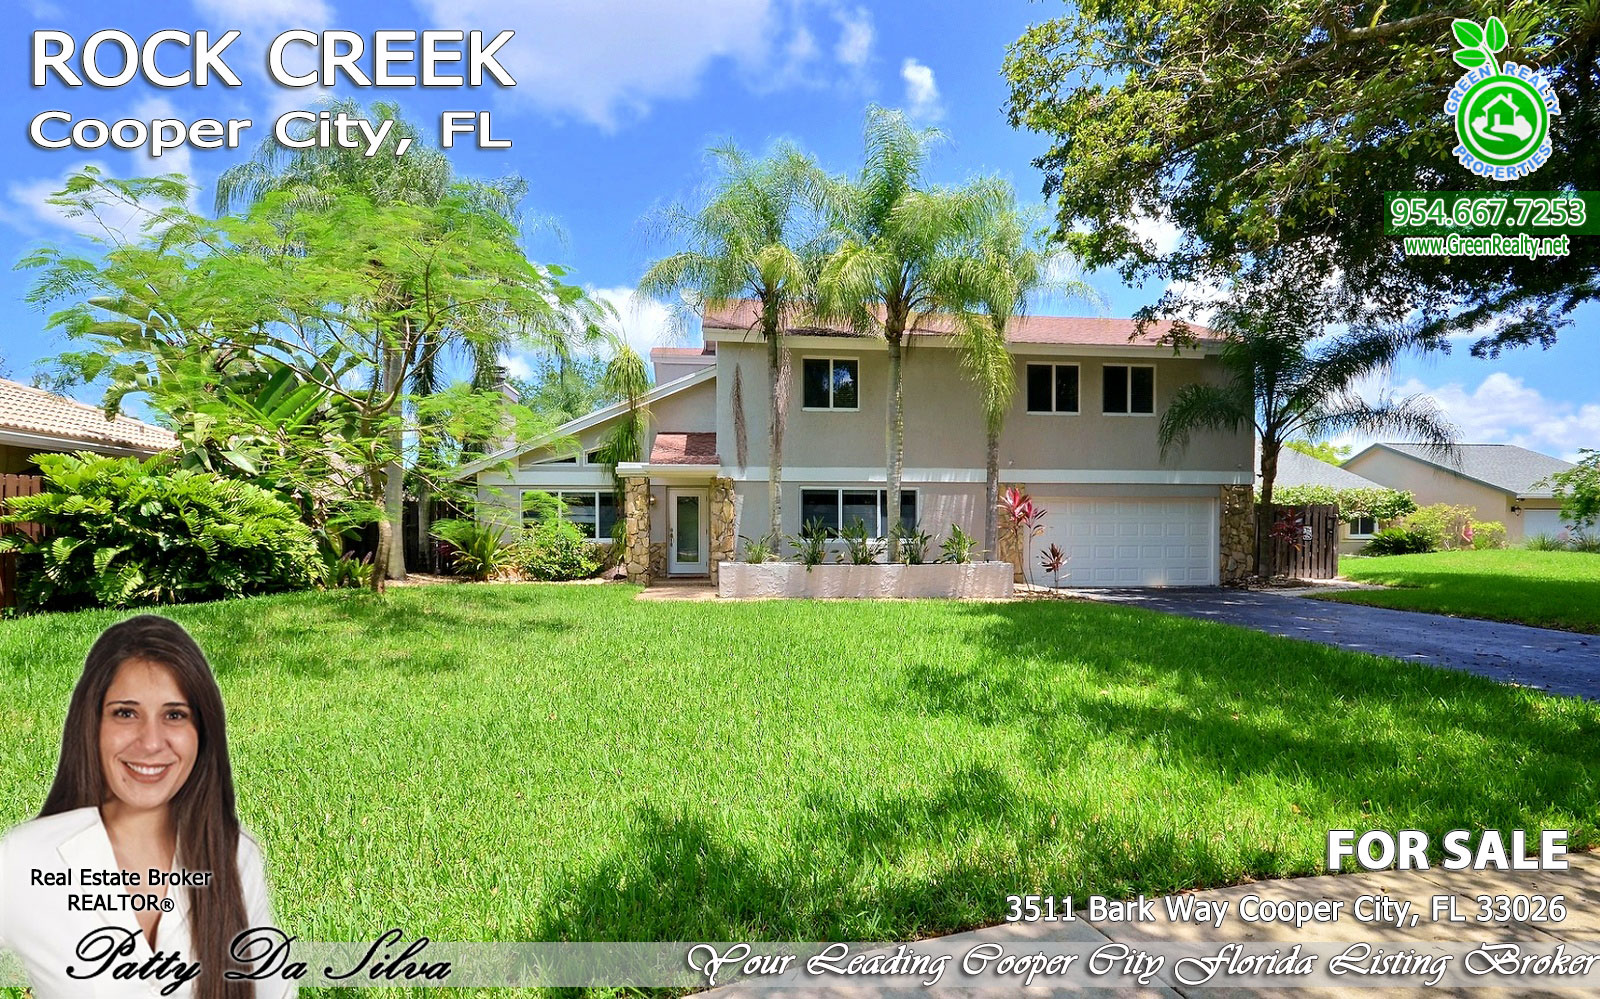 Waterview Pool Home at Rock Creek in Cooper City, FL for